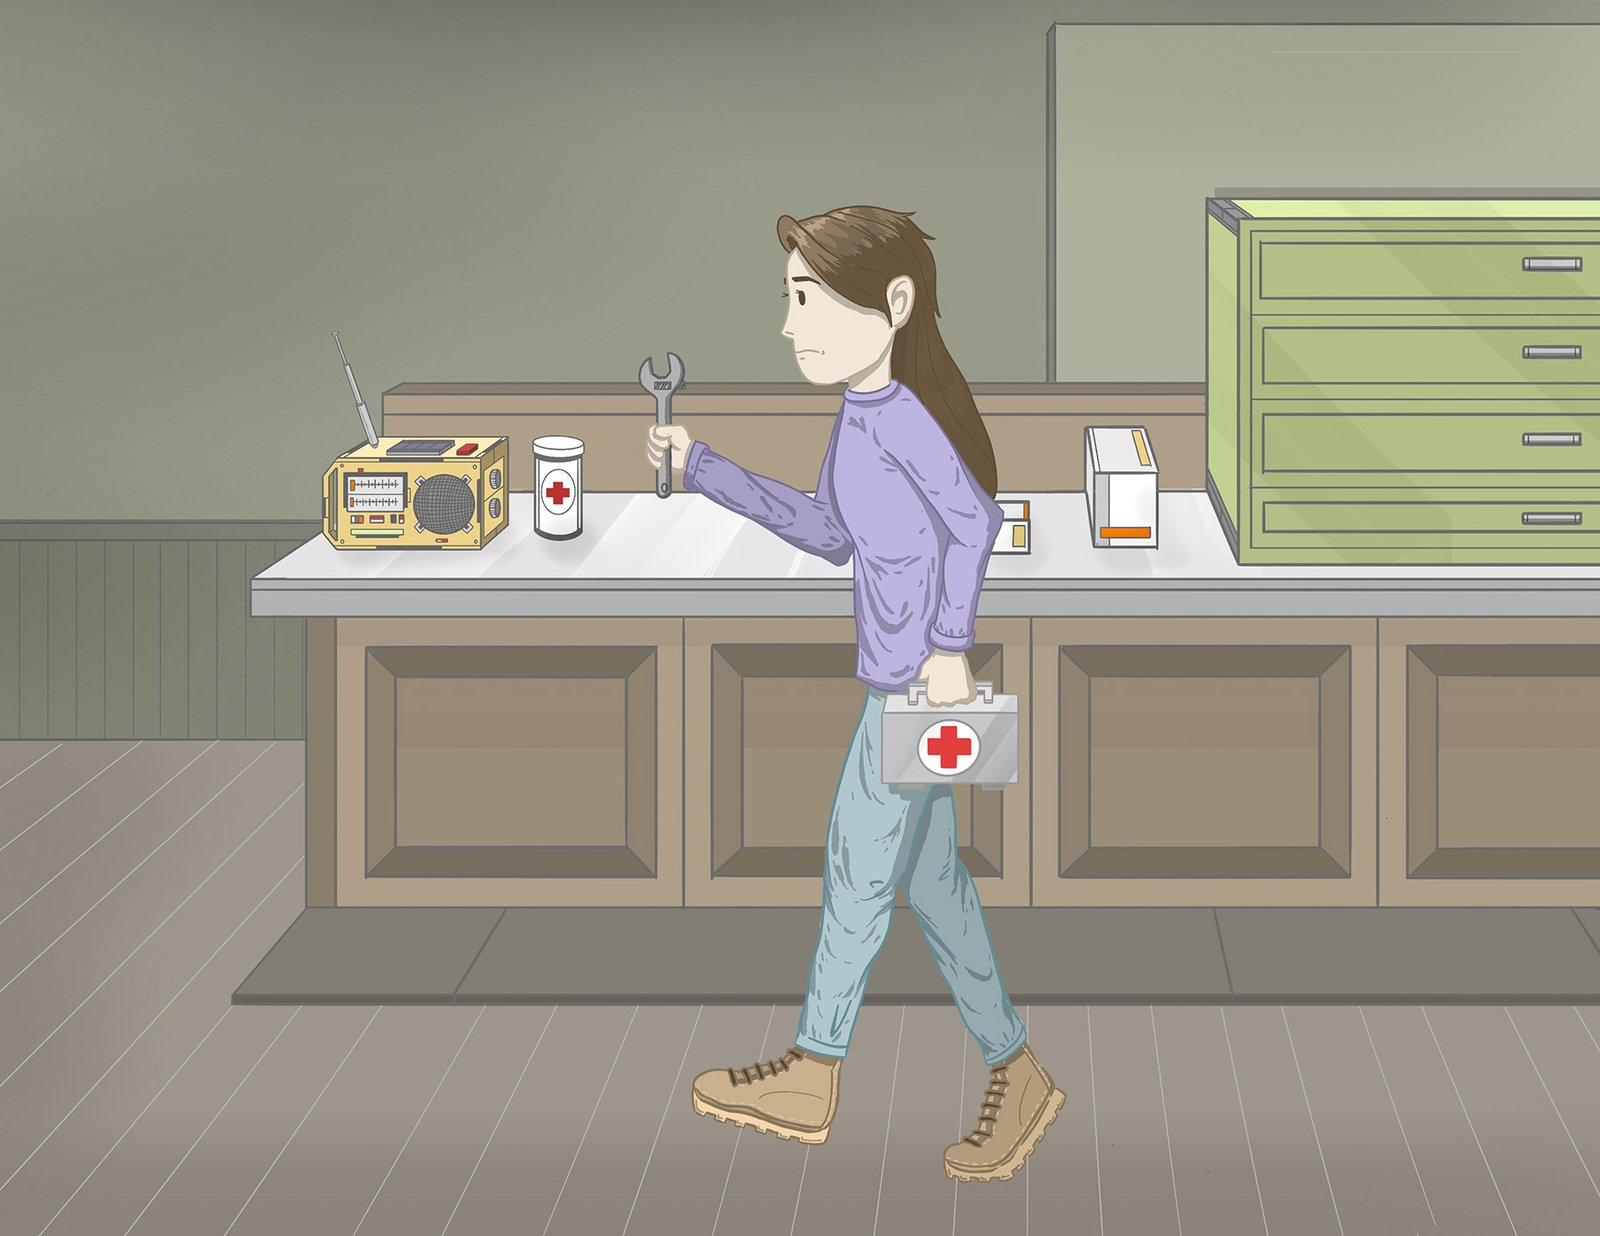 A person shown gathering tools and a first aid kit as they prepare to go and check for damage and injuries as they listen to an emergency broadcast on the radio.